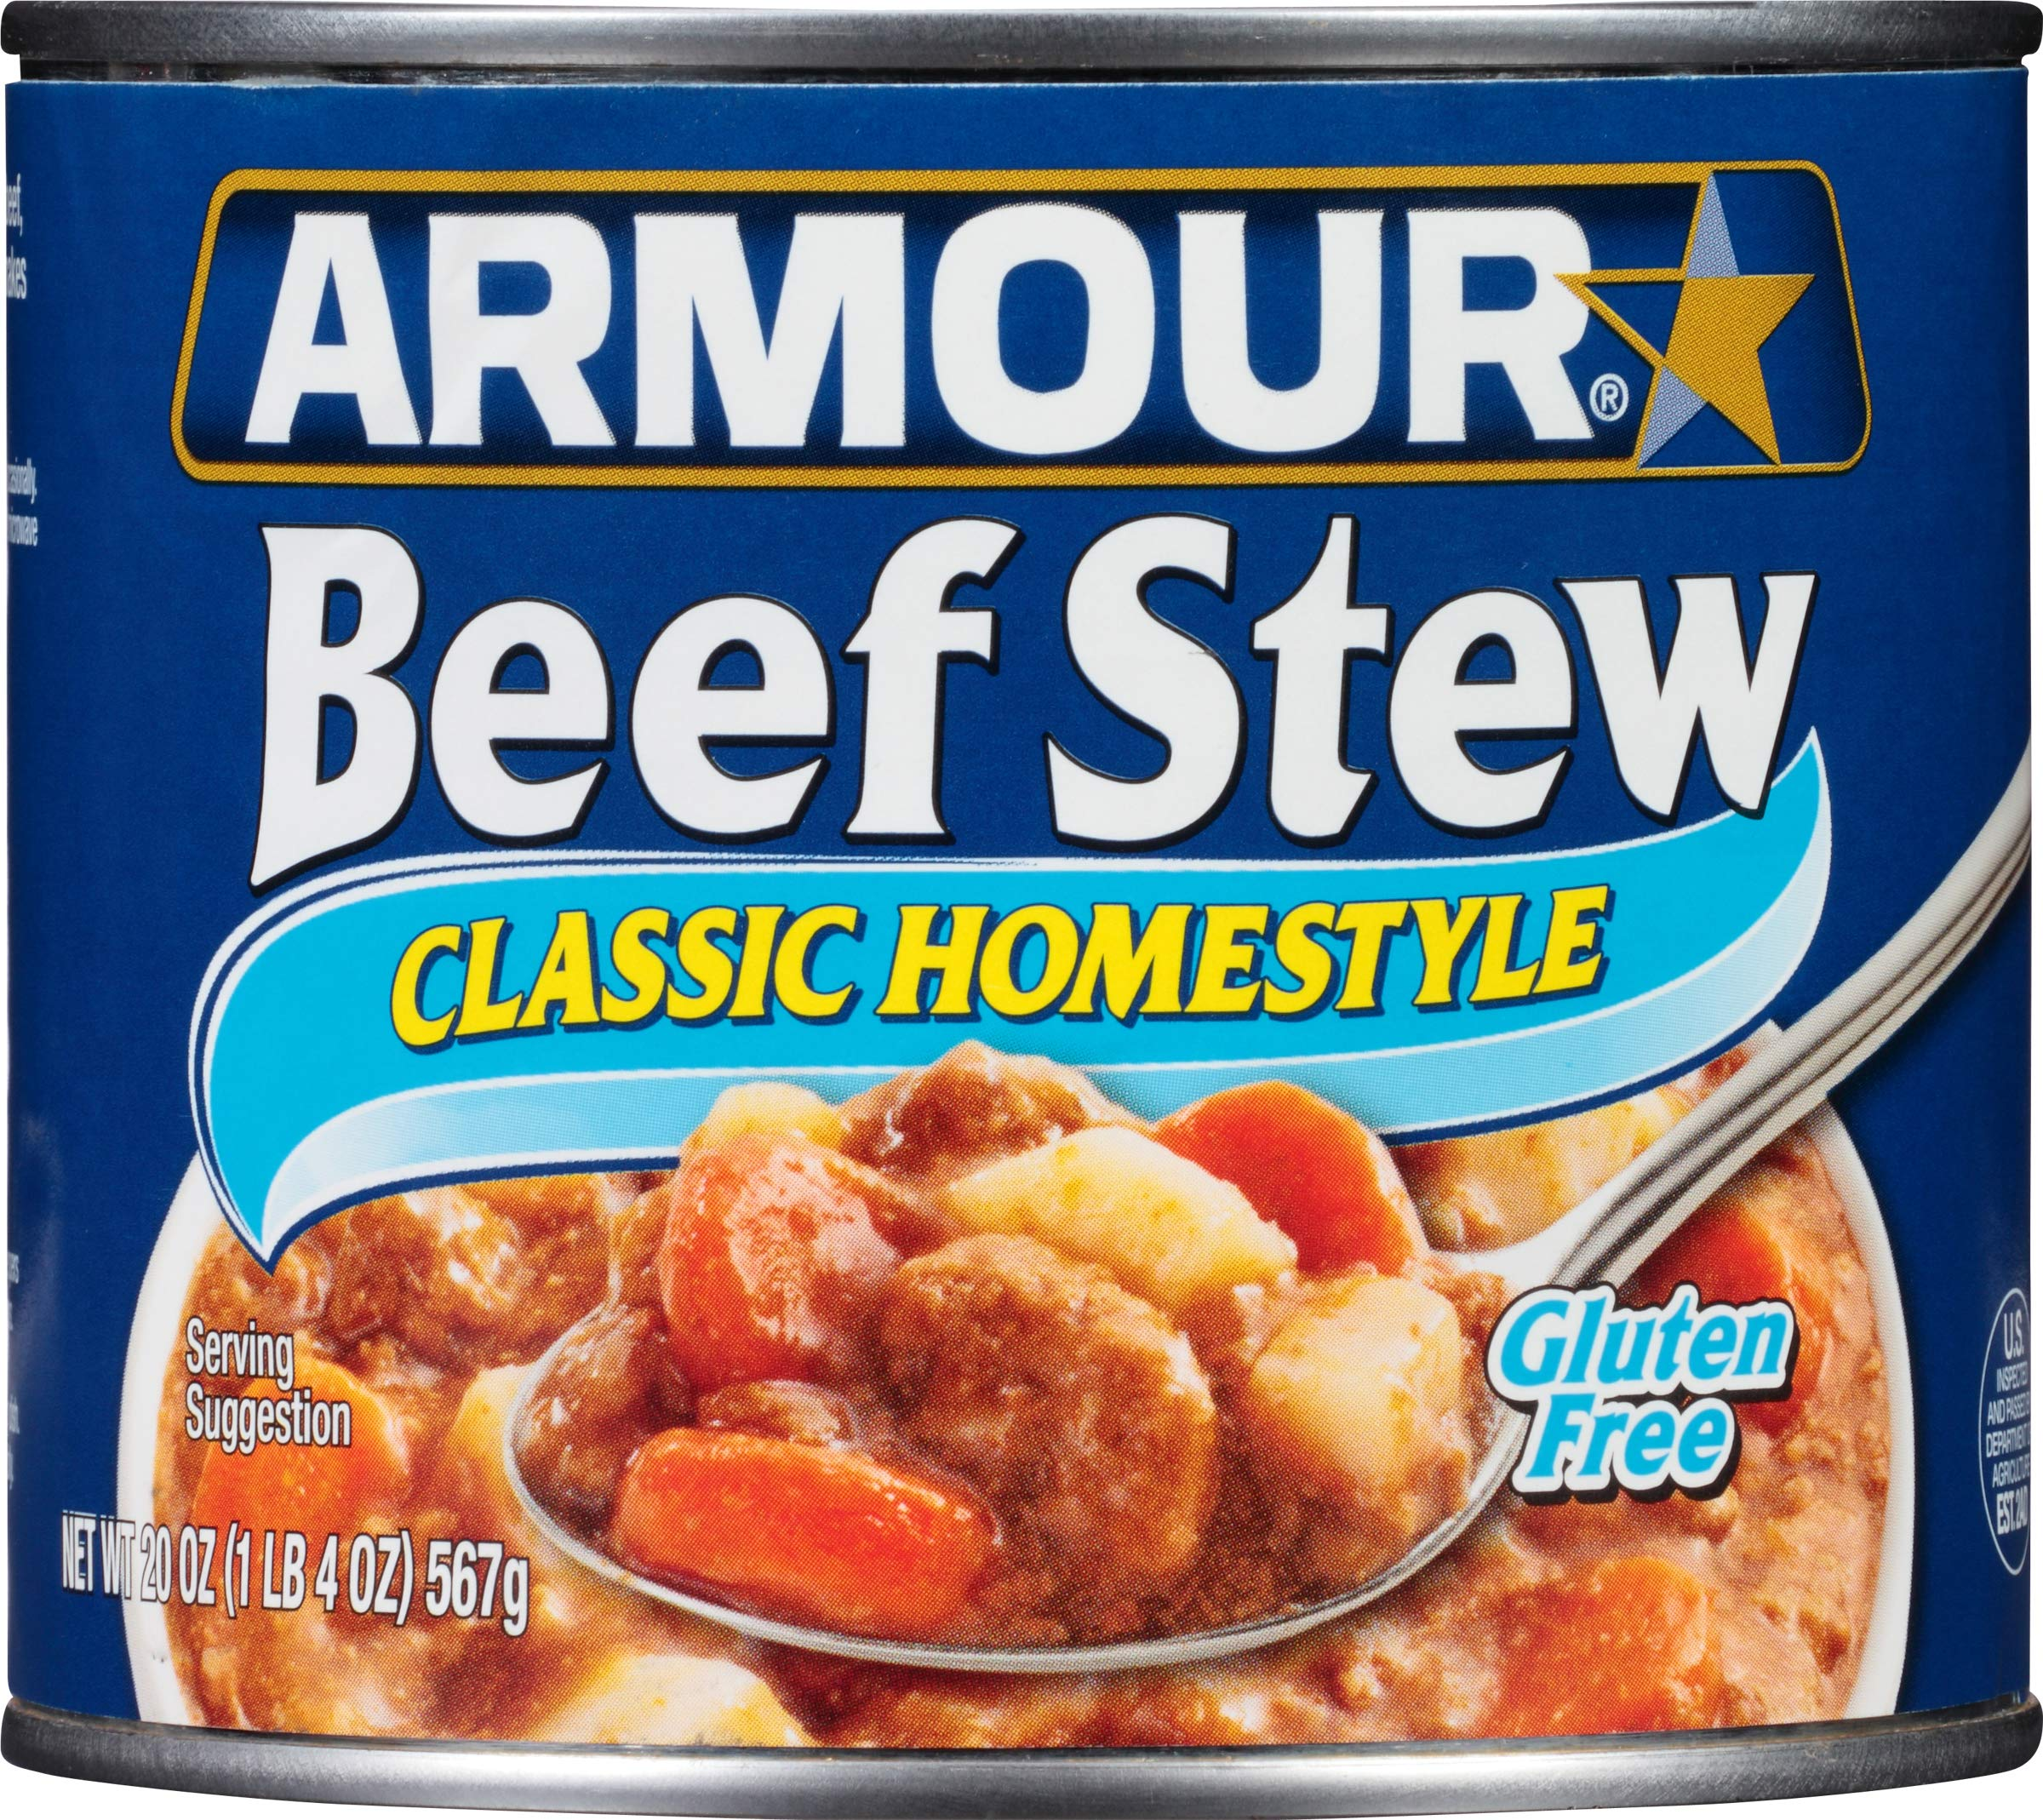 Armour Star Classic Homestyle Beef Stew, 20 oz. (Pack of 12)